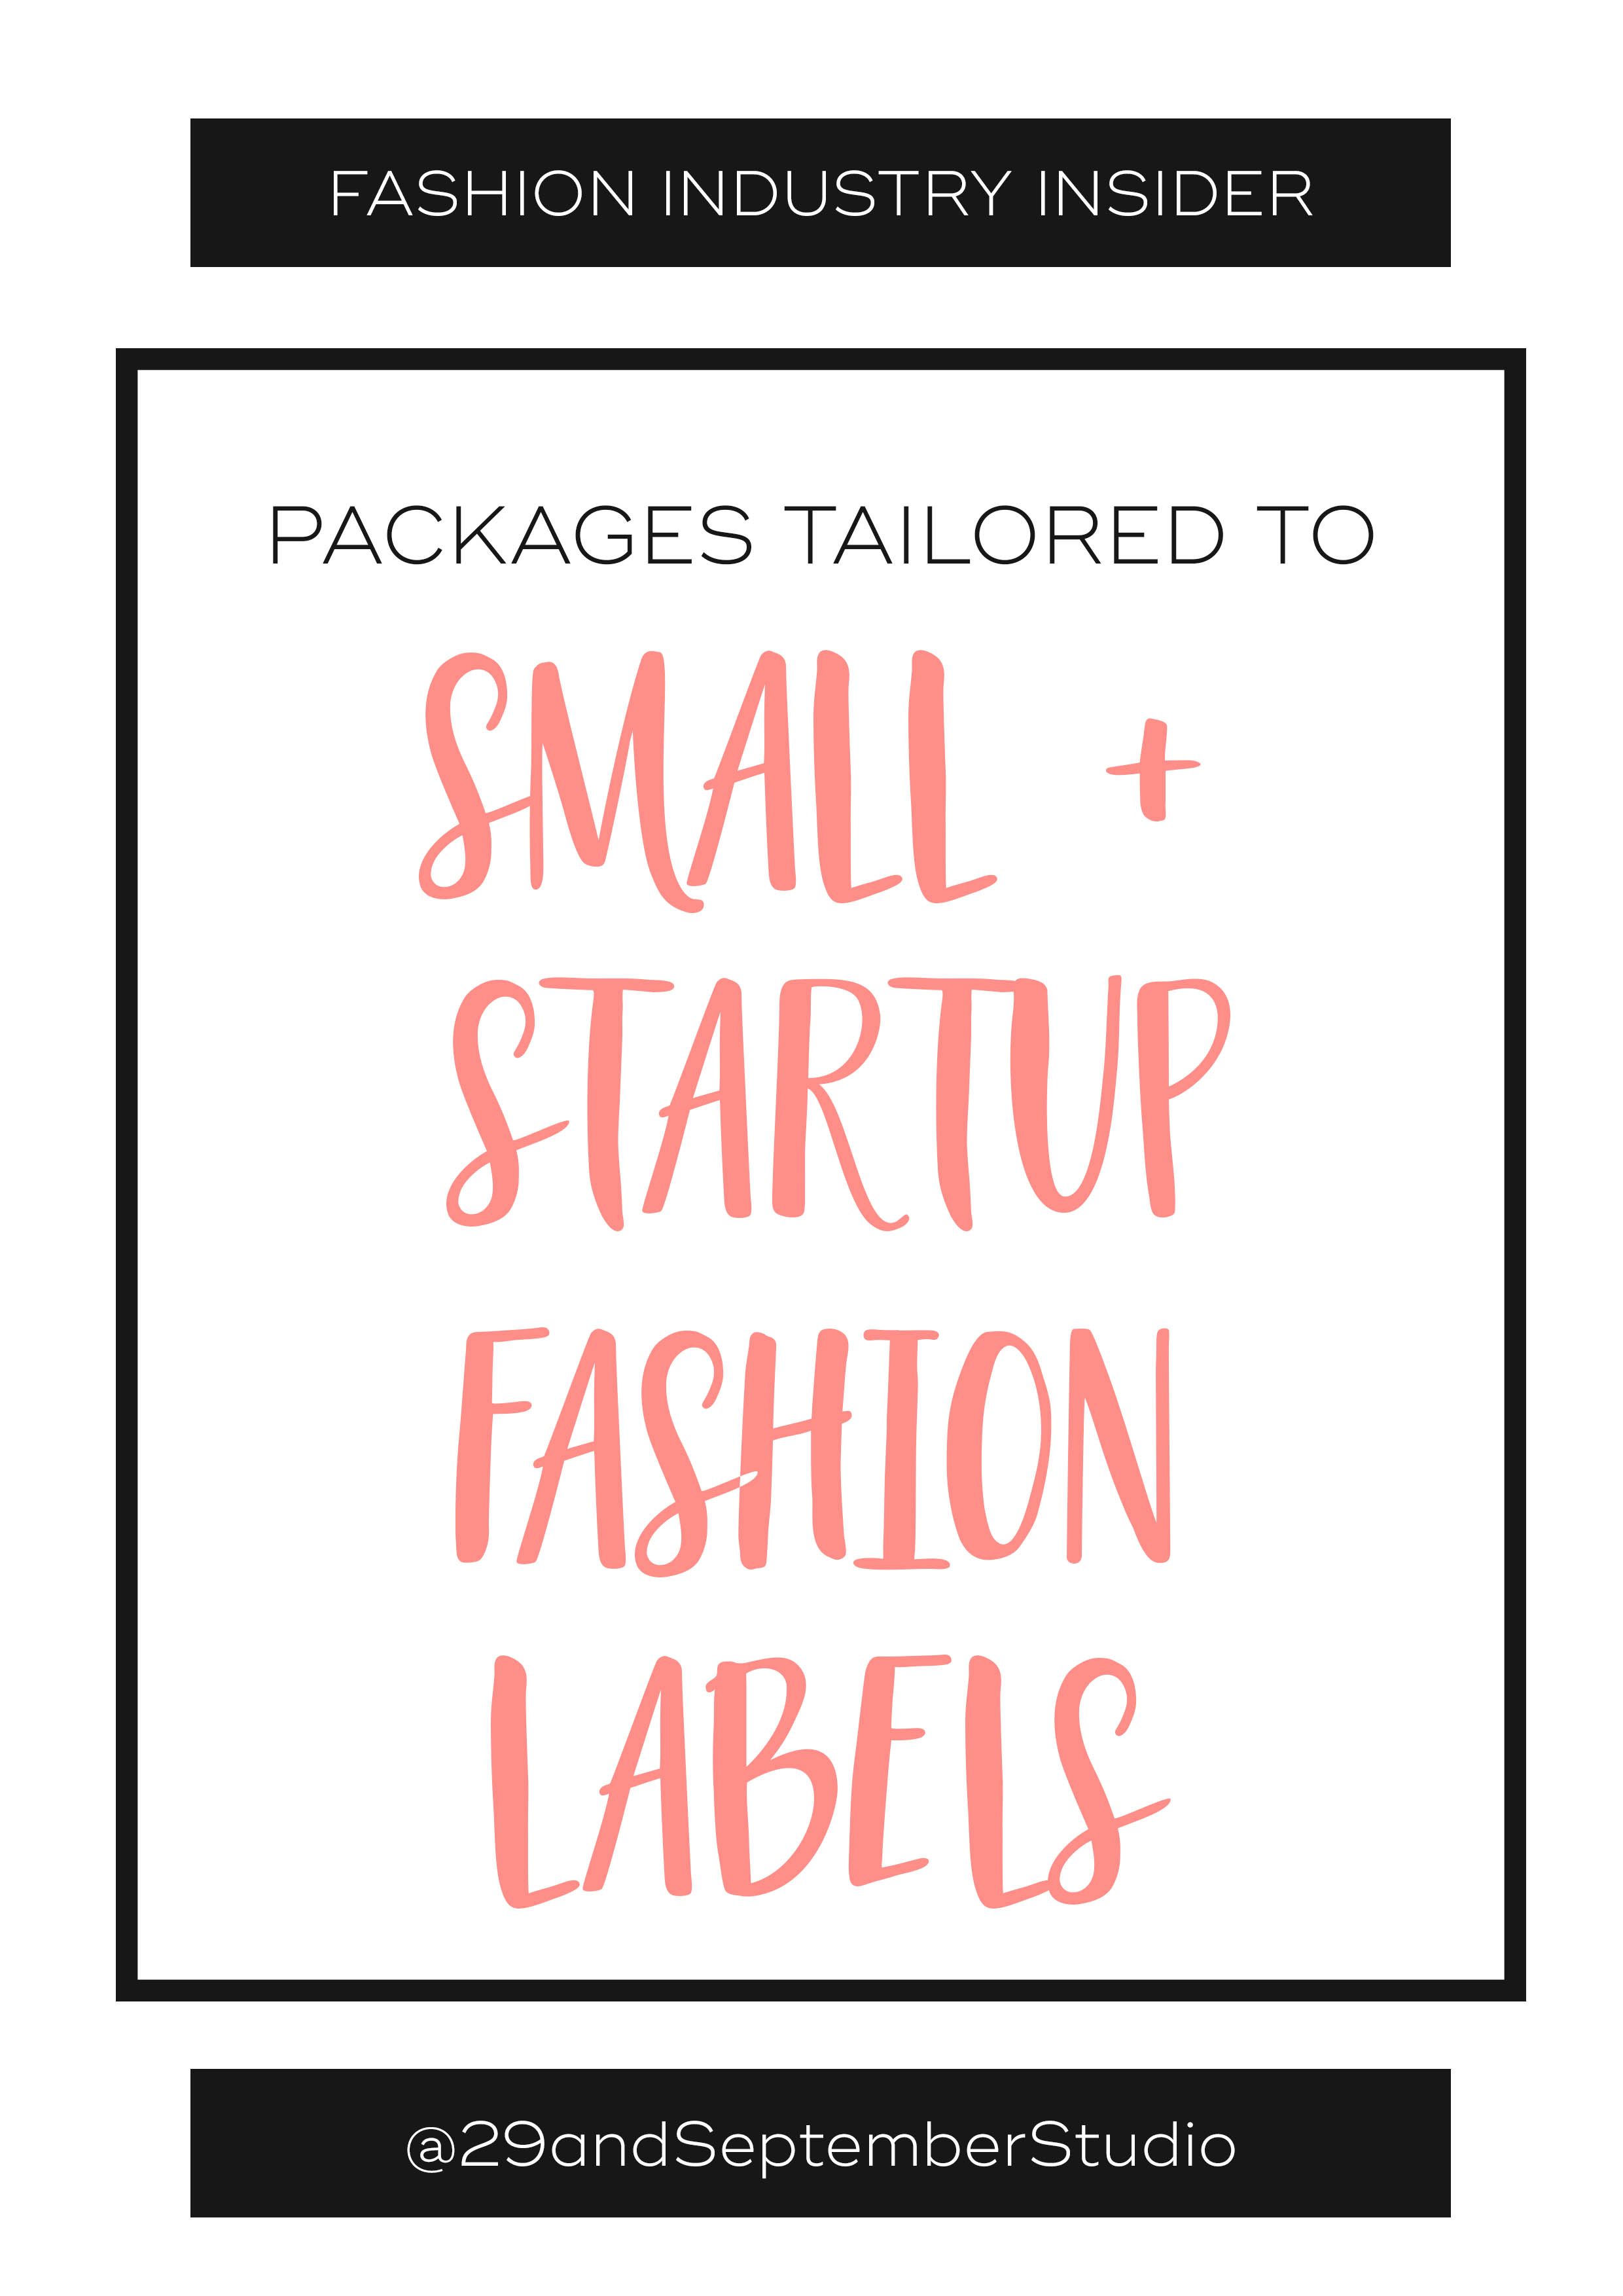 Packages for small + startup fashion labels who want to know how to start a fashion brand